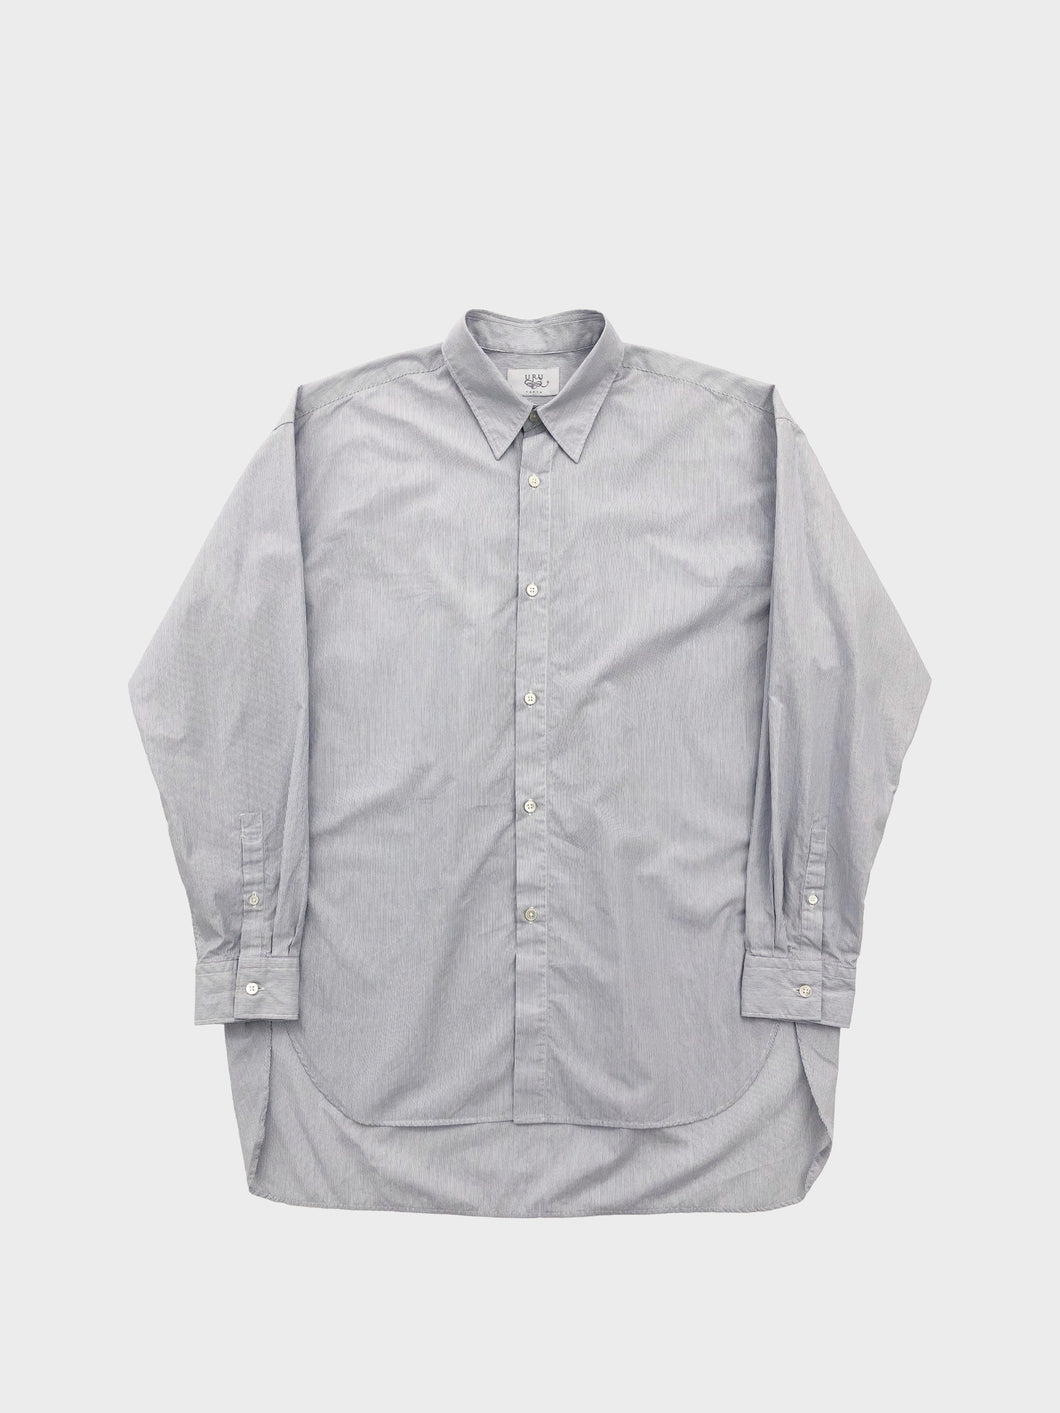 URU / COTTON REGULAR COLLAR L/S SHIRT (WHITE×NAVY)